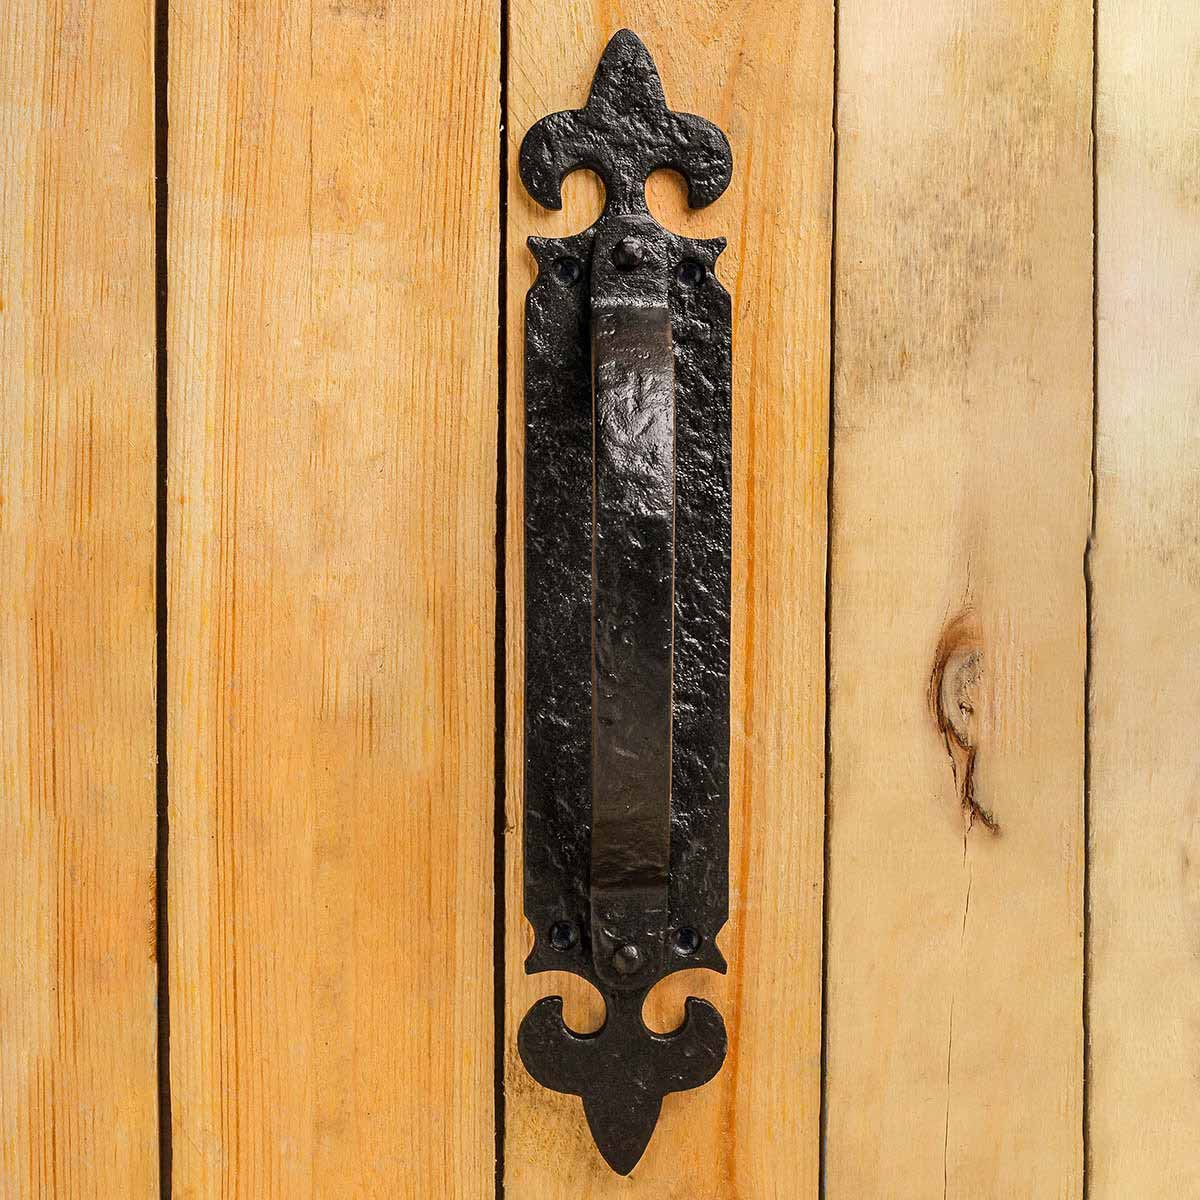 ... U003cPREu003e10 1/2 Inch Decorative Door Handle Black Iron Door Pull Handle ...